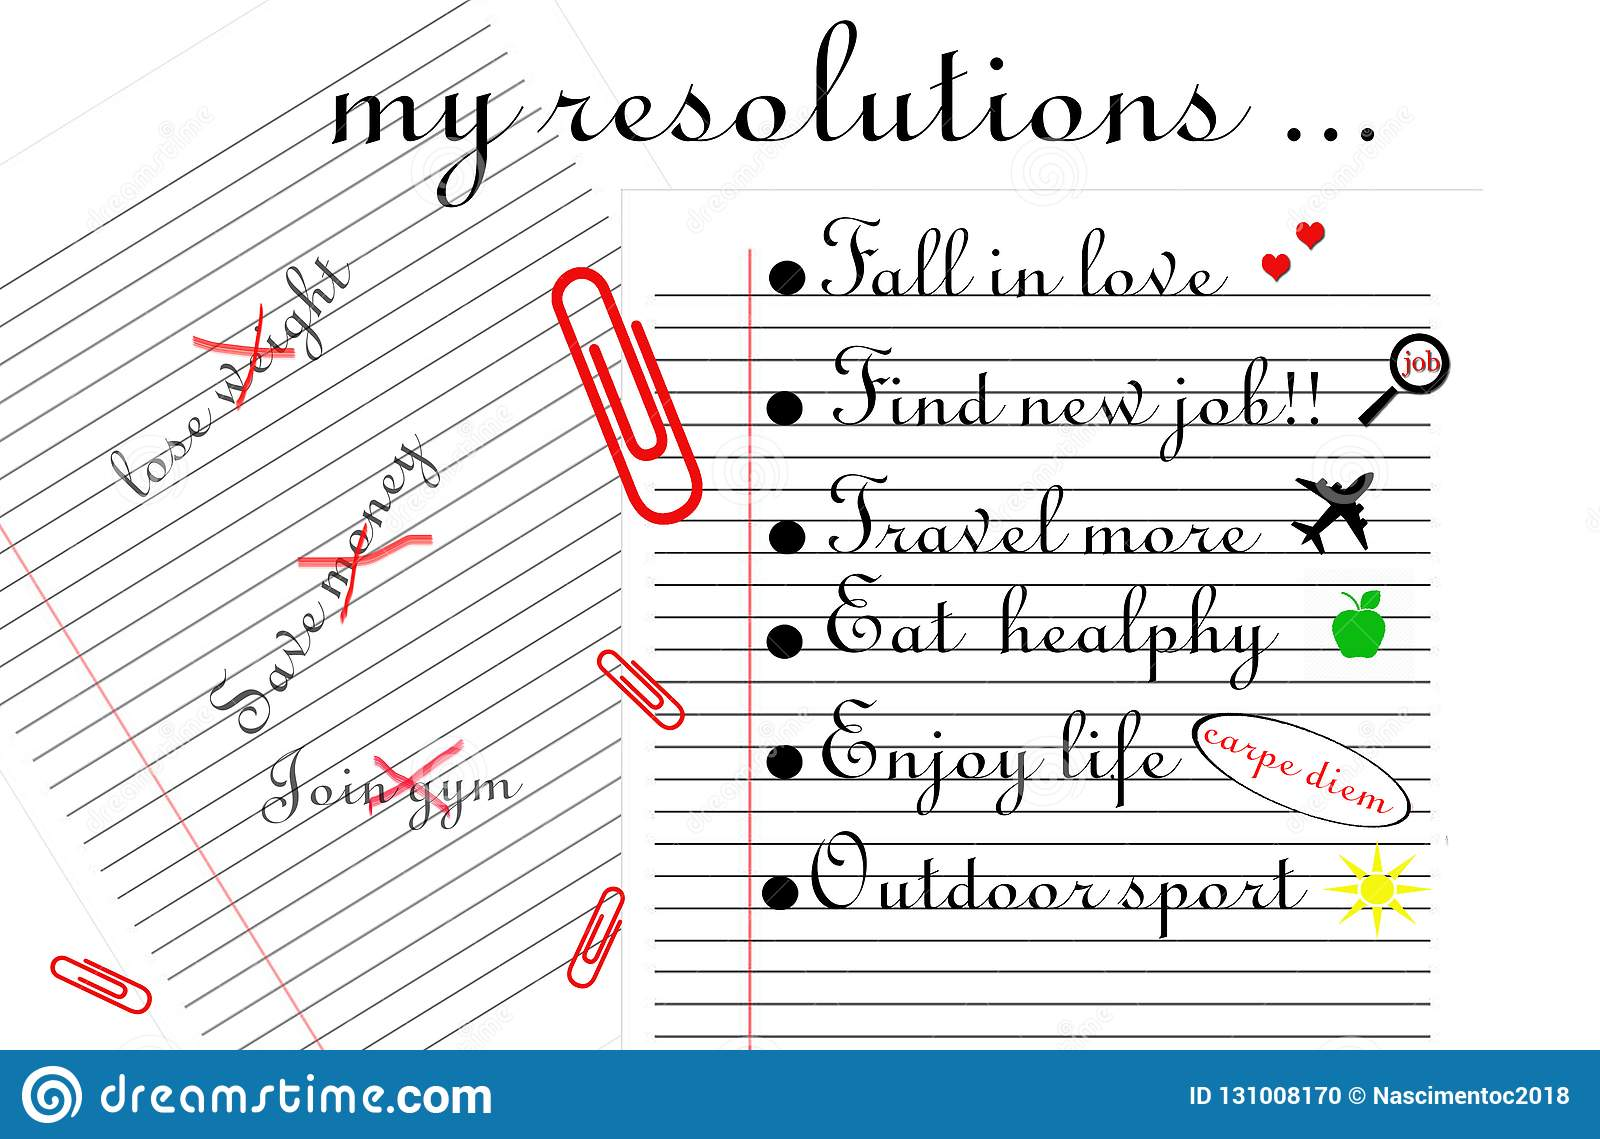 `My resolutions` illustration.Two lined sheets, one with three resolutions with a cross in red and other with six final resolution